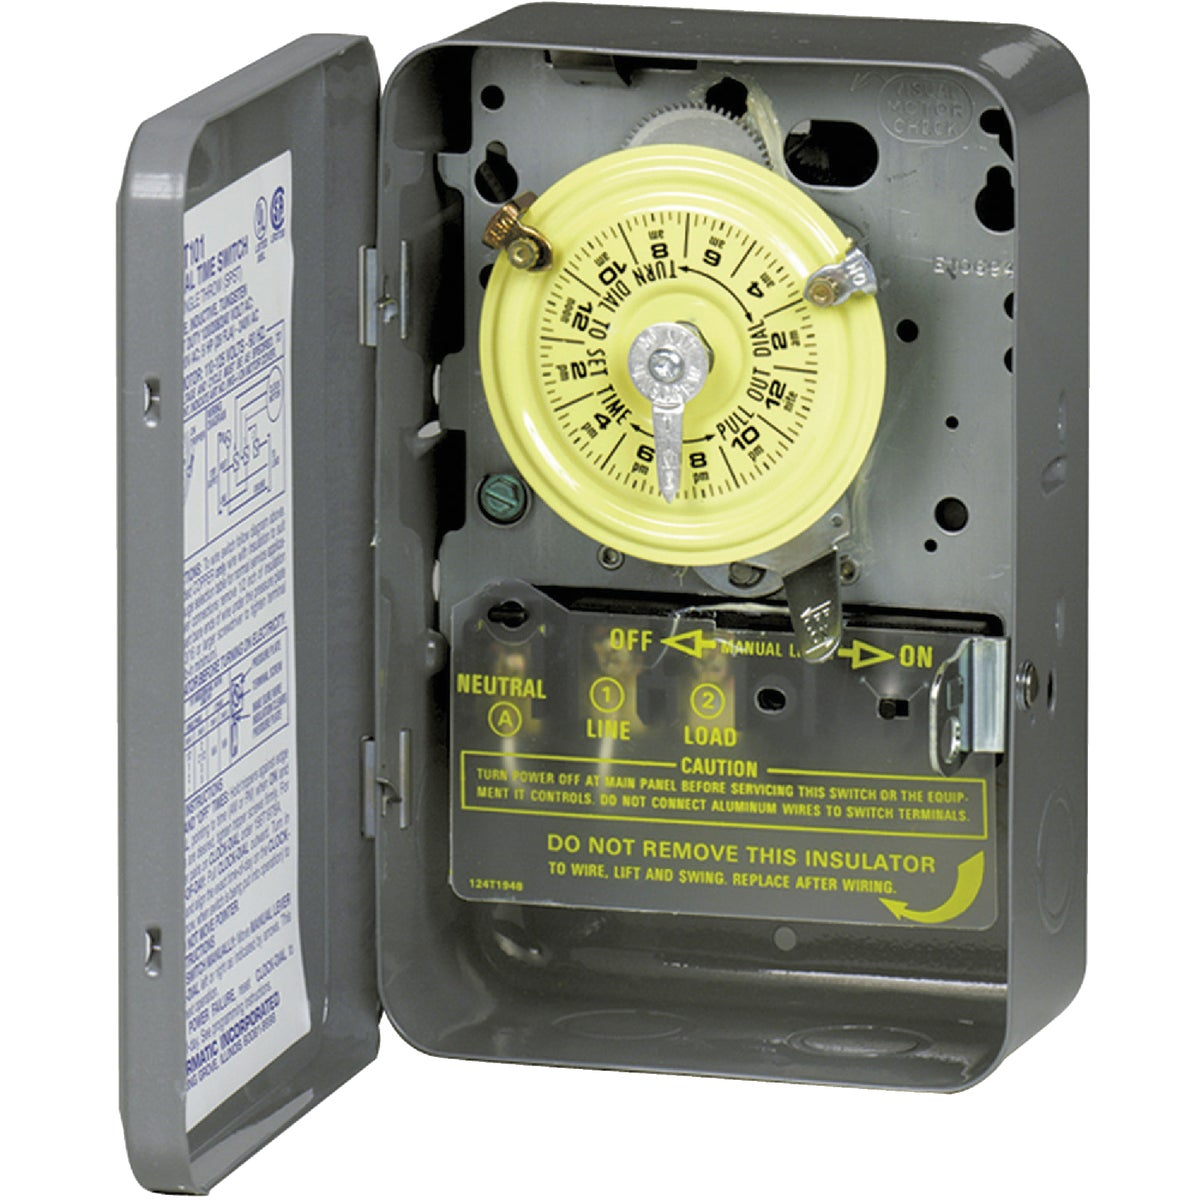 240V DPST TIME SWITCH - T104 by Intermatic Inc